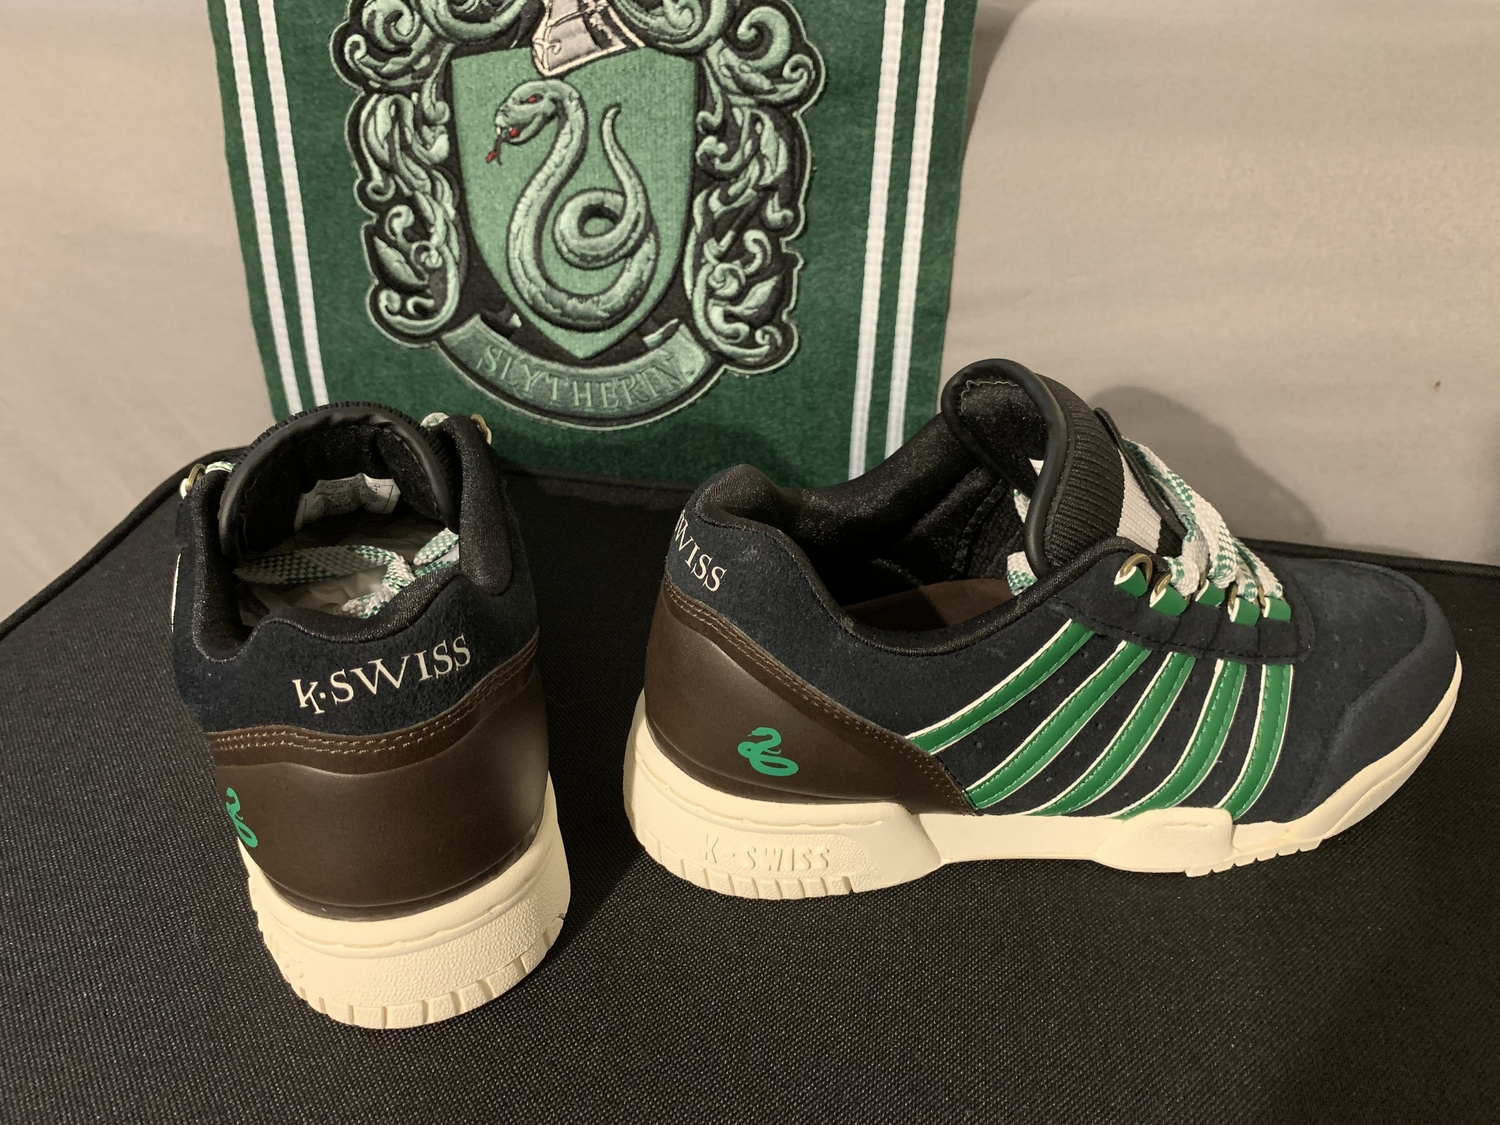 K-Swiss sneakers, back and side views